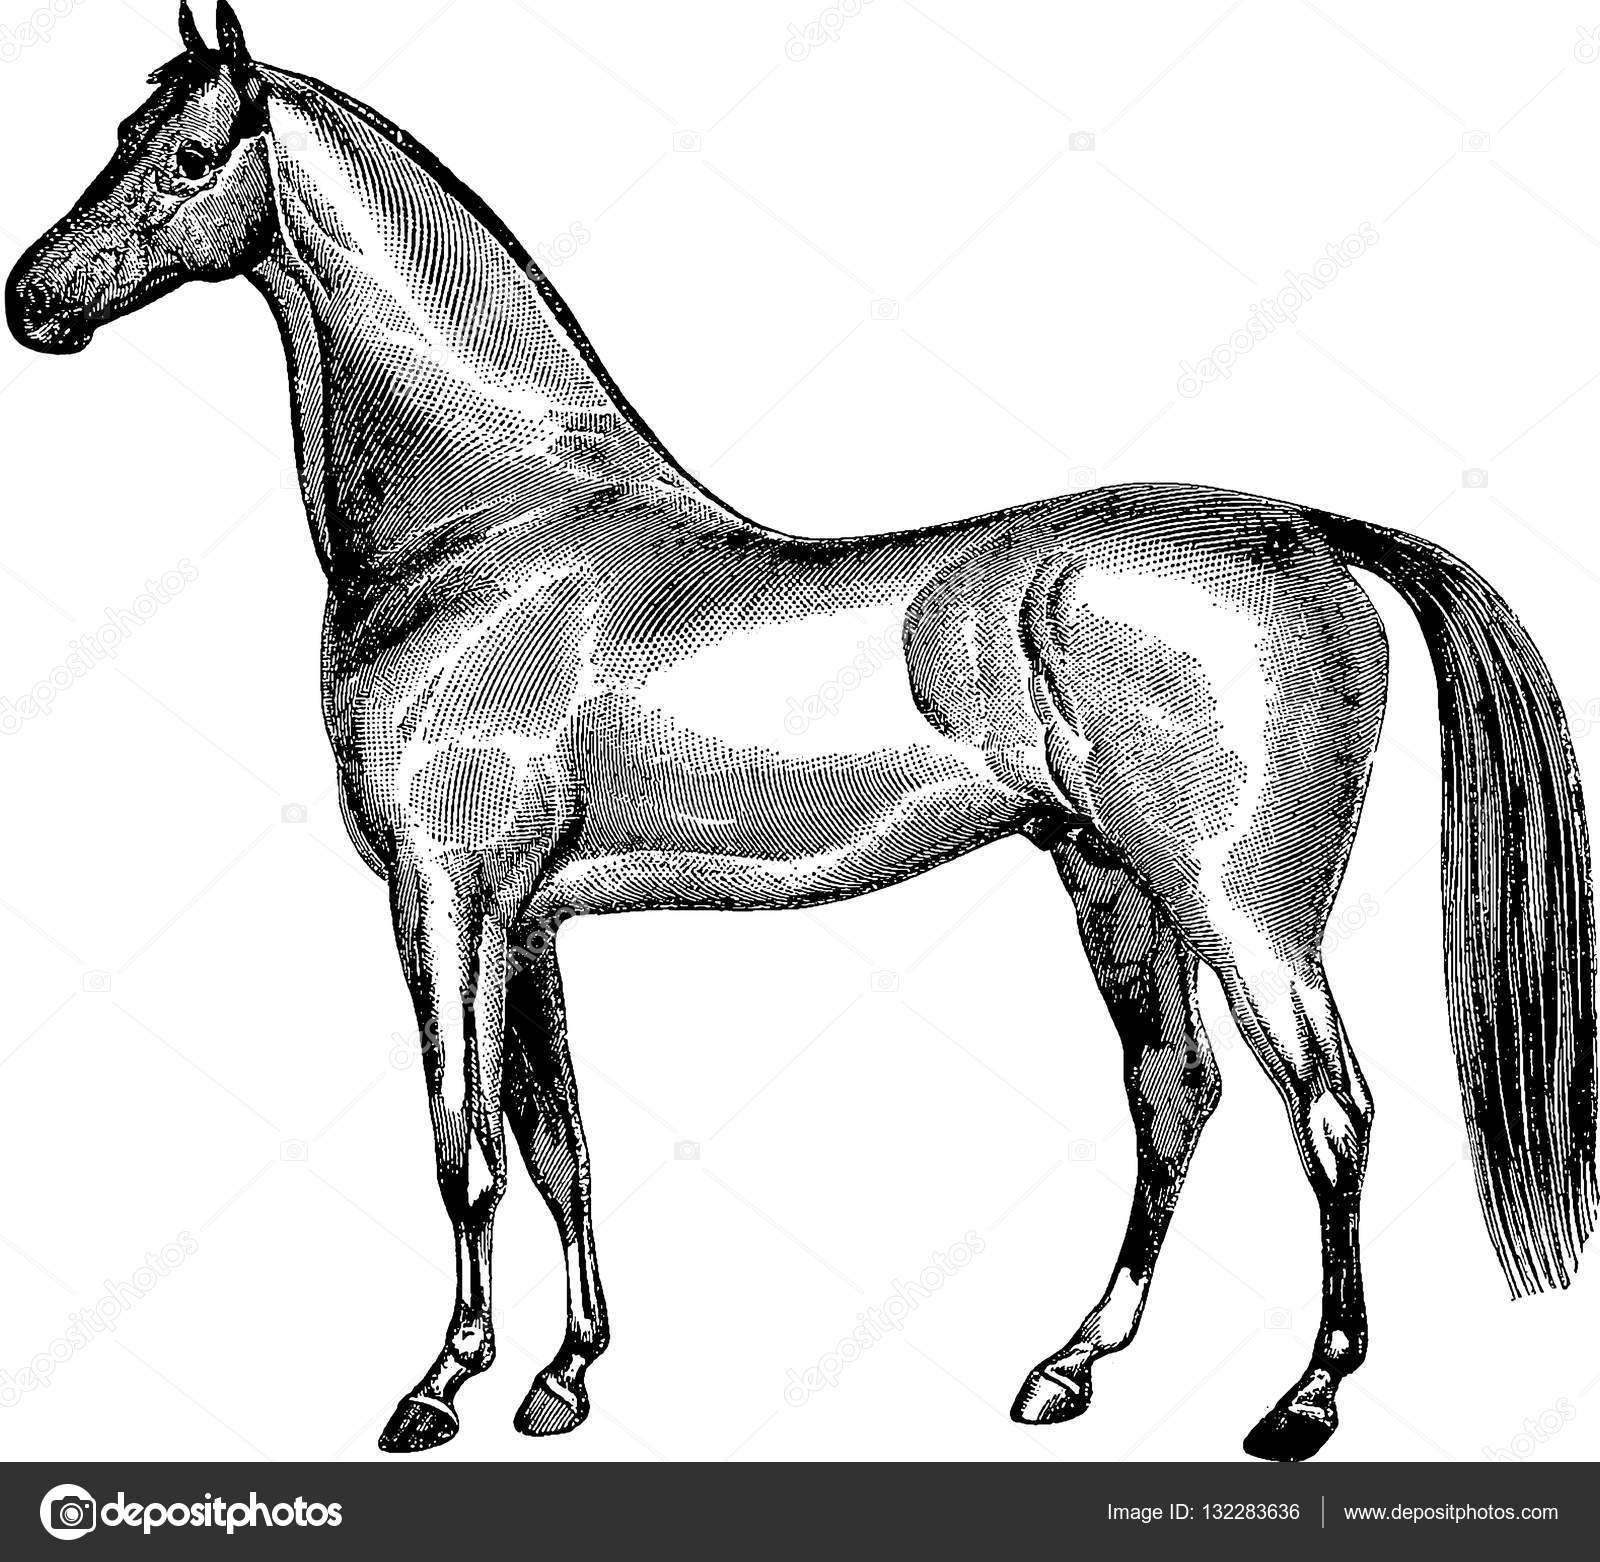 ᐈ Horse Drawing Stock Drawings Royalty Free Horse Pictures Drawing Images Download On Depositphotos